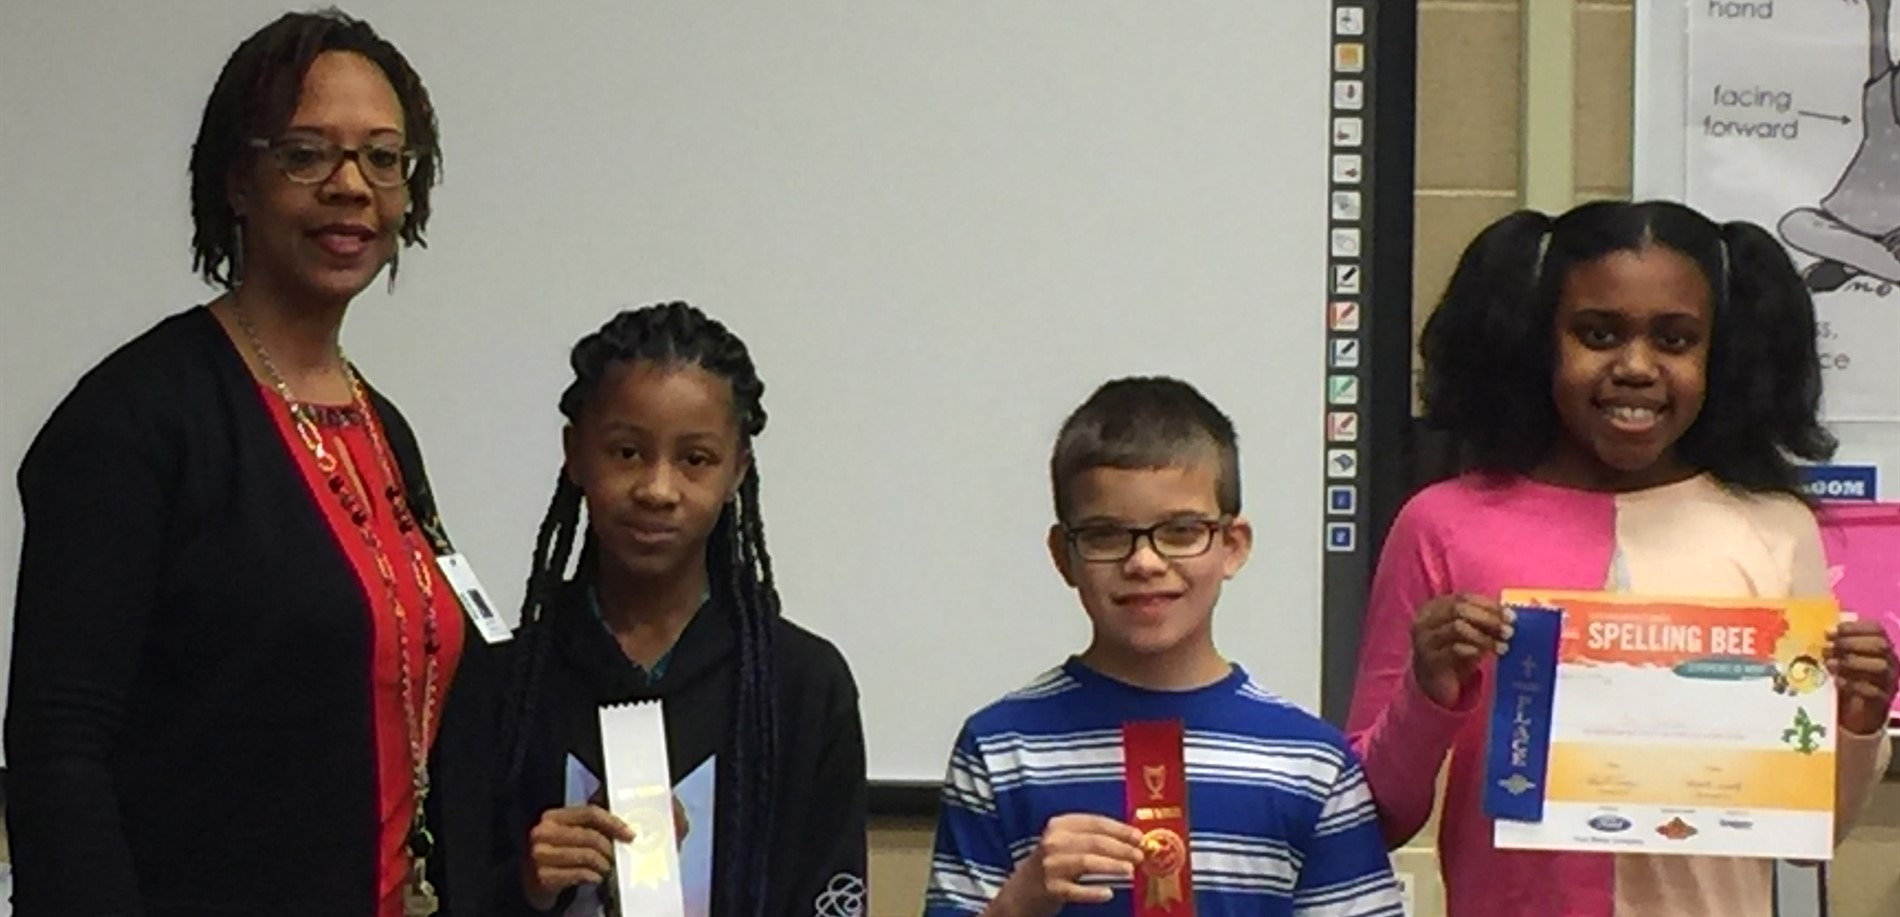 2018-19 Spelling Bee Winners at Radcliff Elementary School